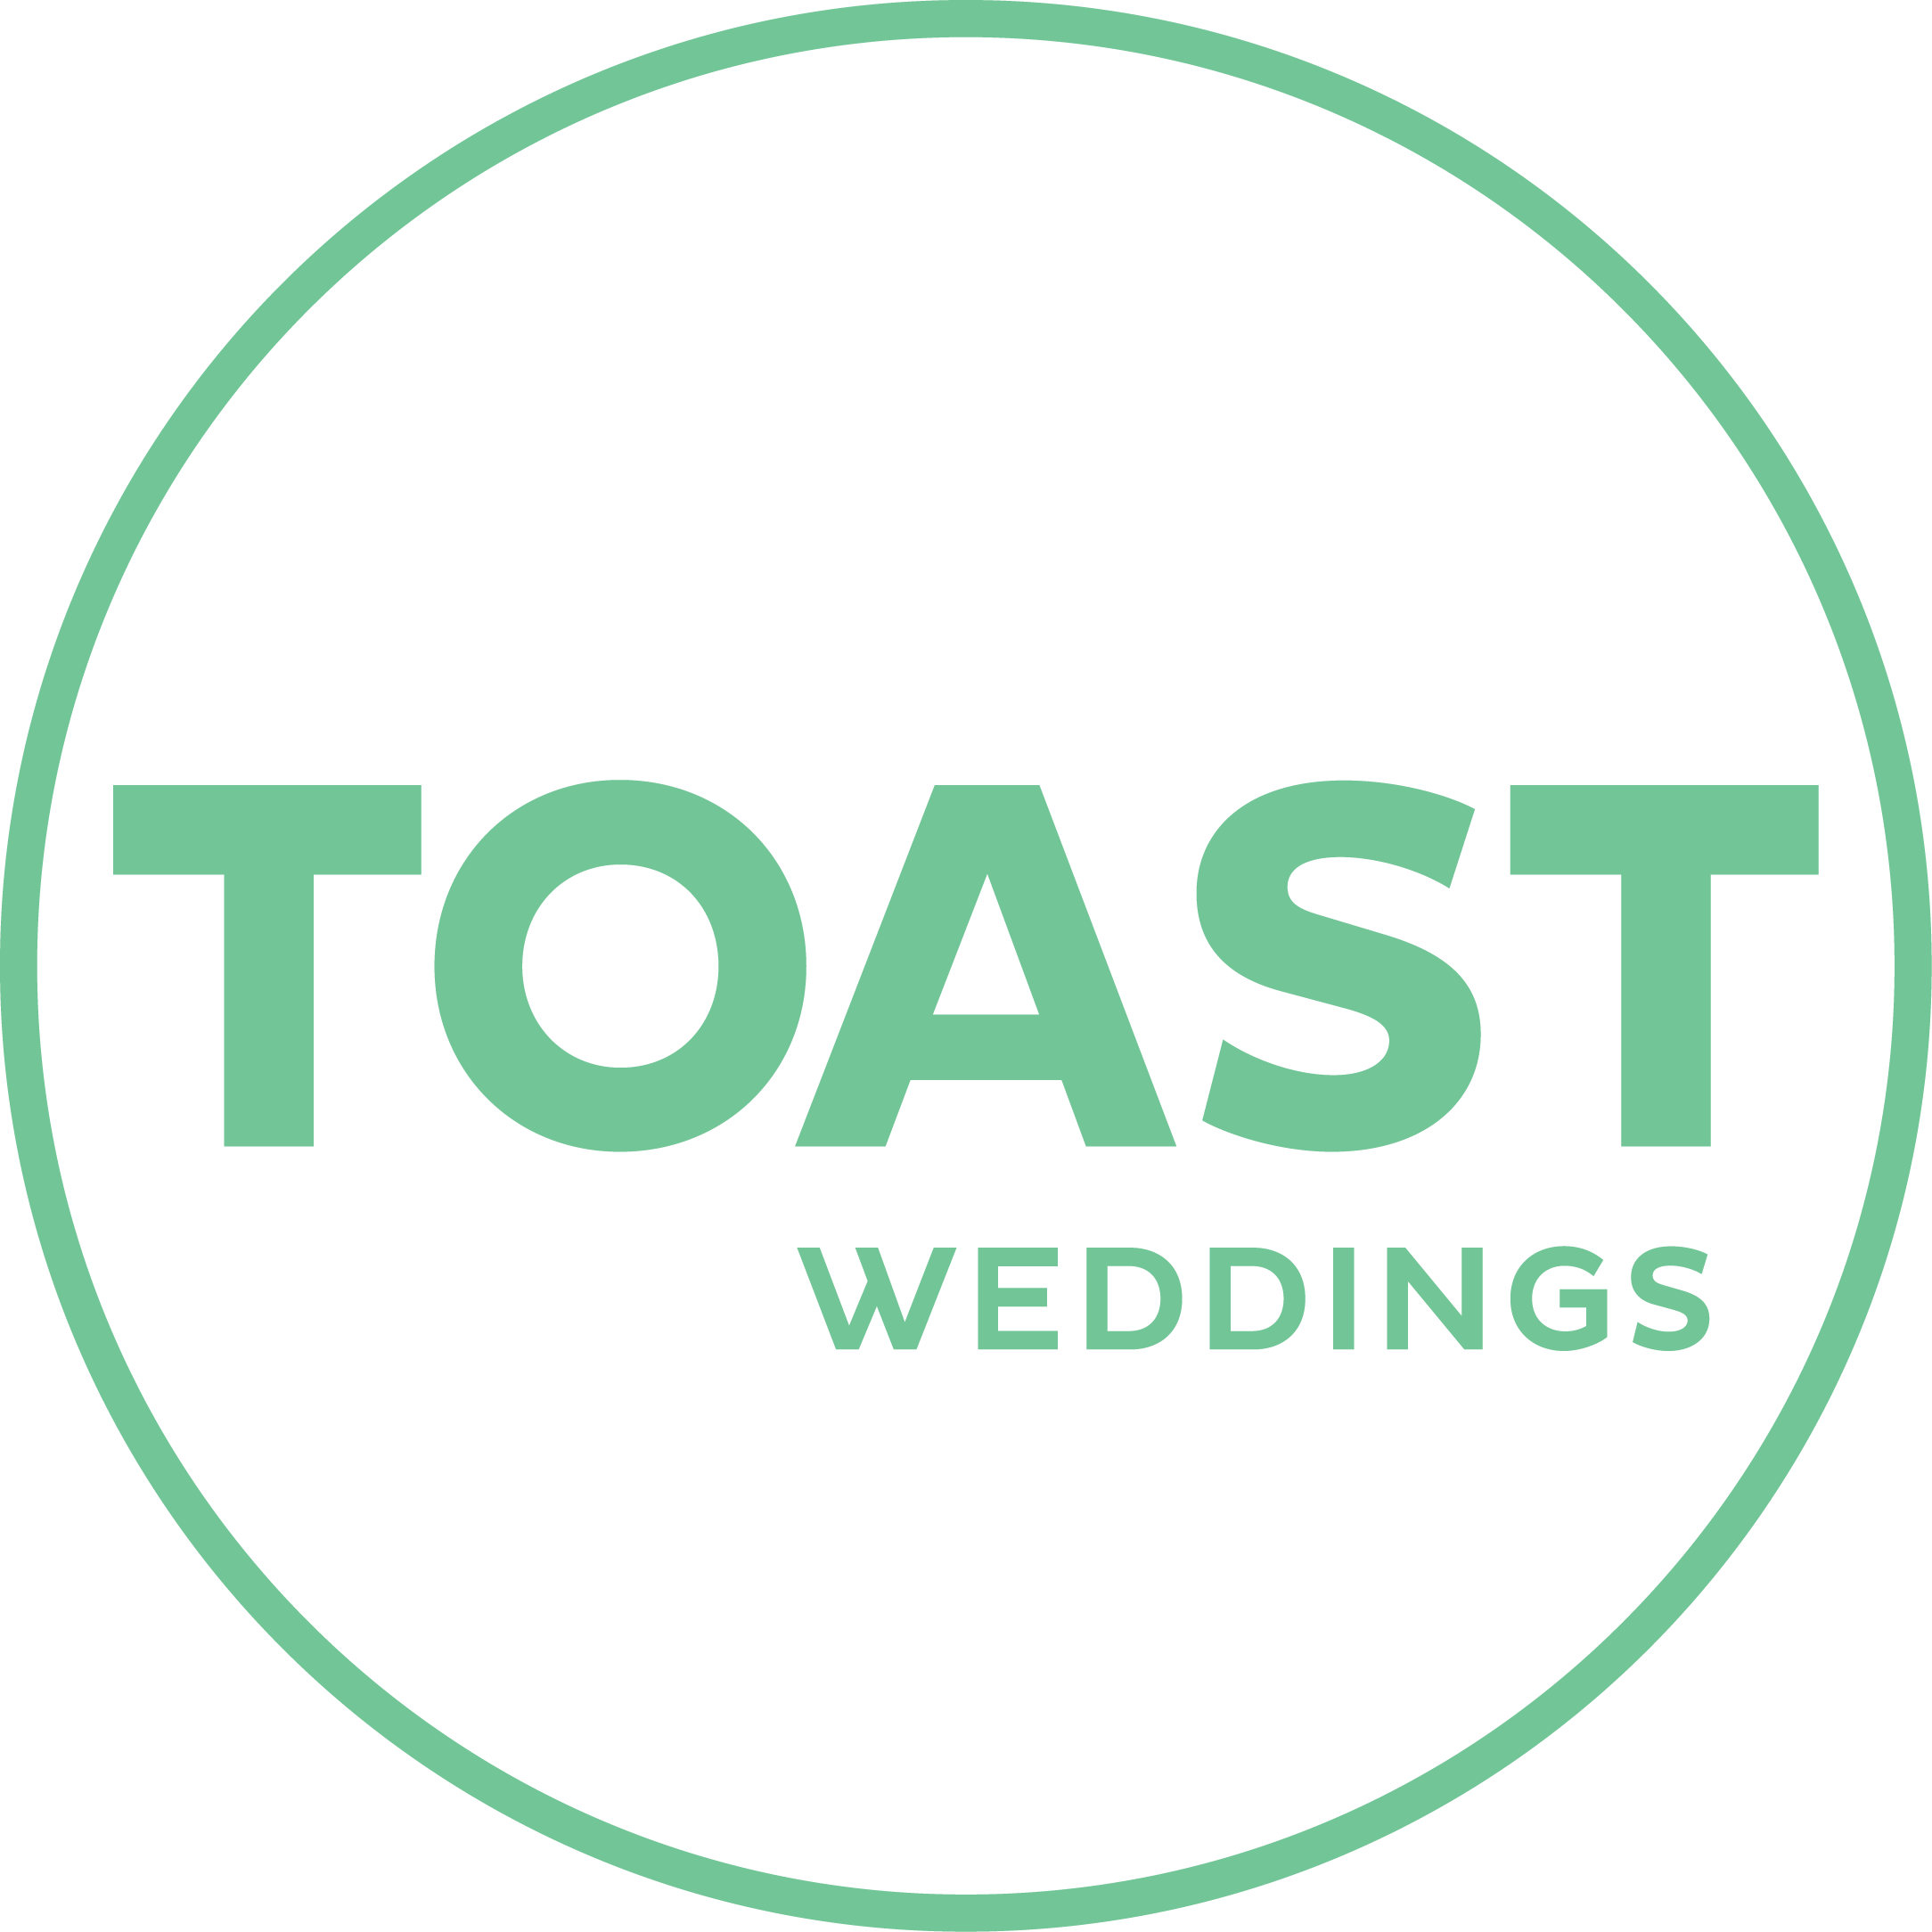 TOASTweddings-346.png